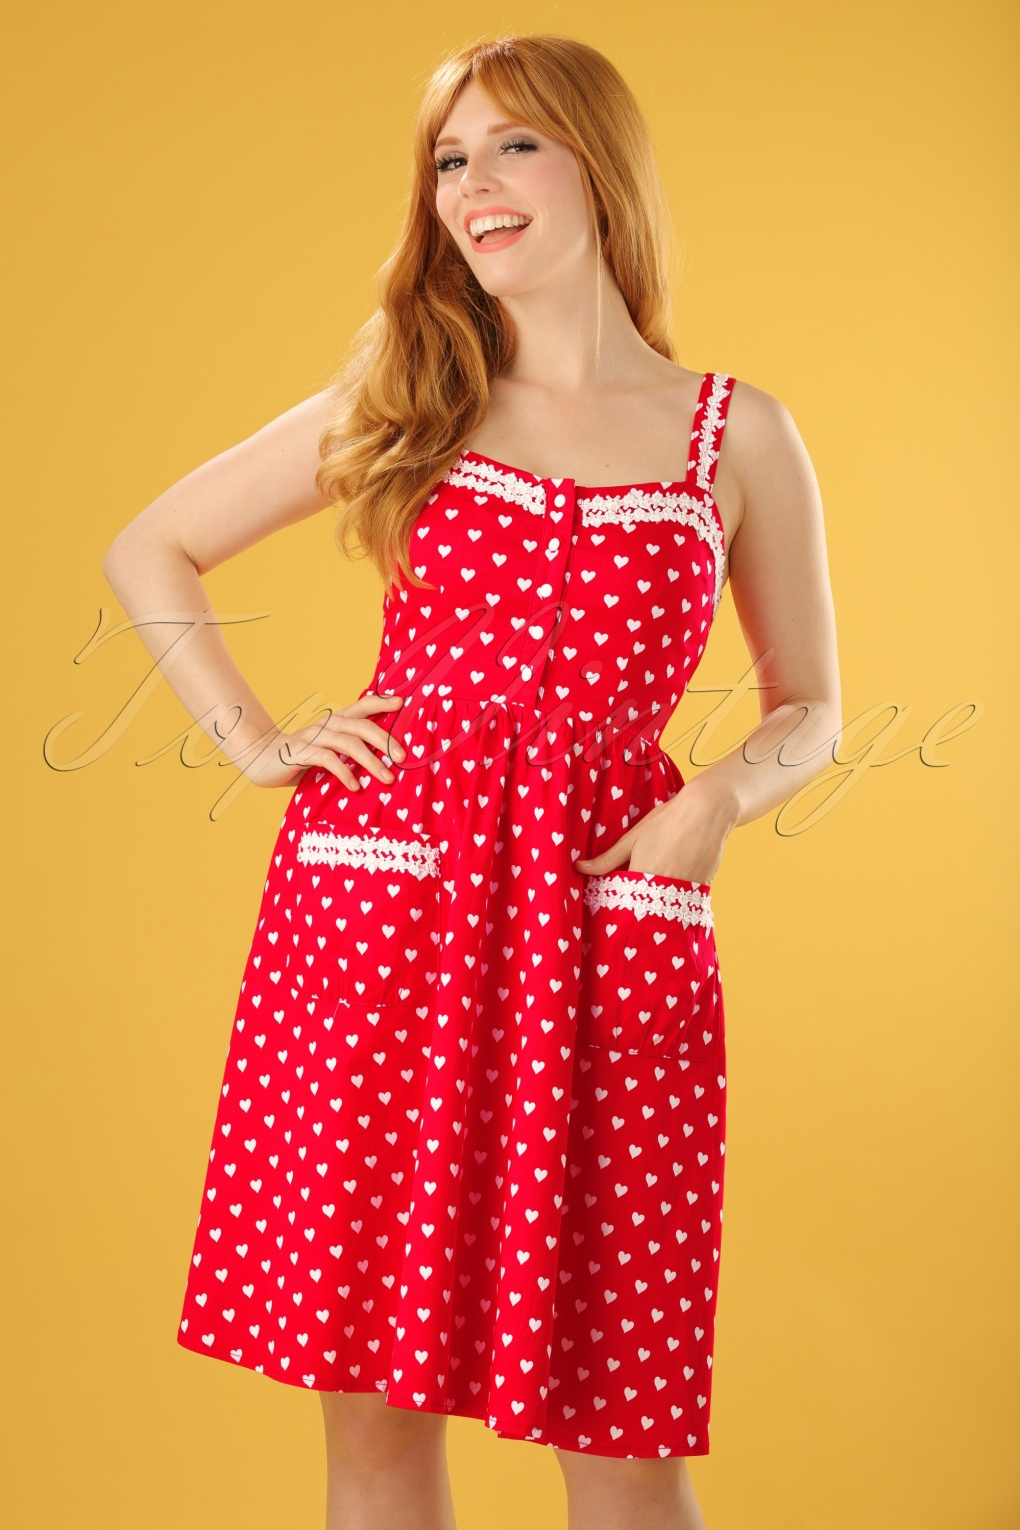 1940s Pinup Dresses for Sale 50s Corinna Polkadot Swing Dress in Bright Red £30.00 AT vintagedancer.com